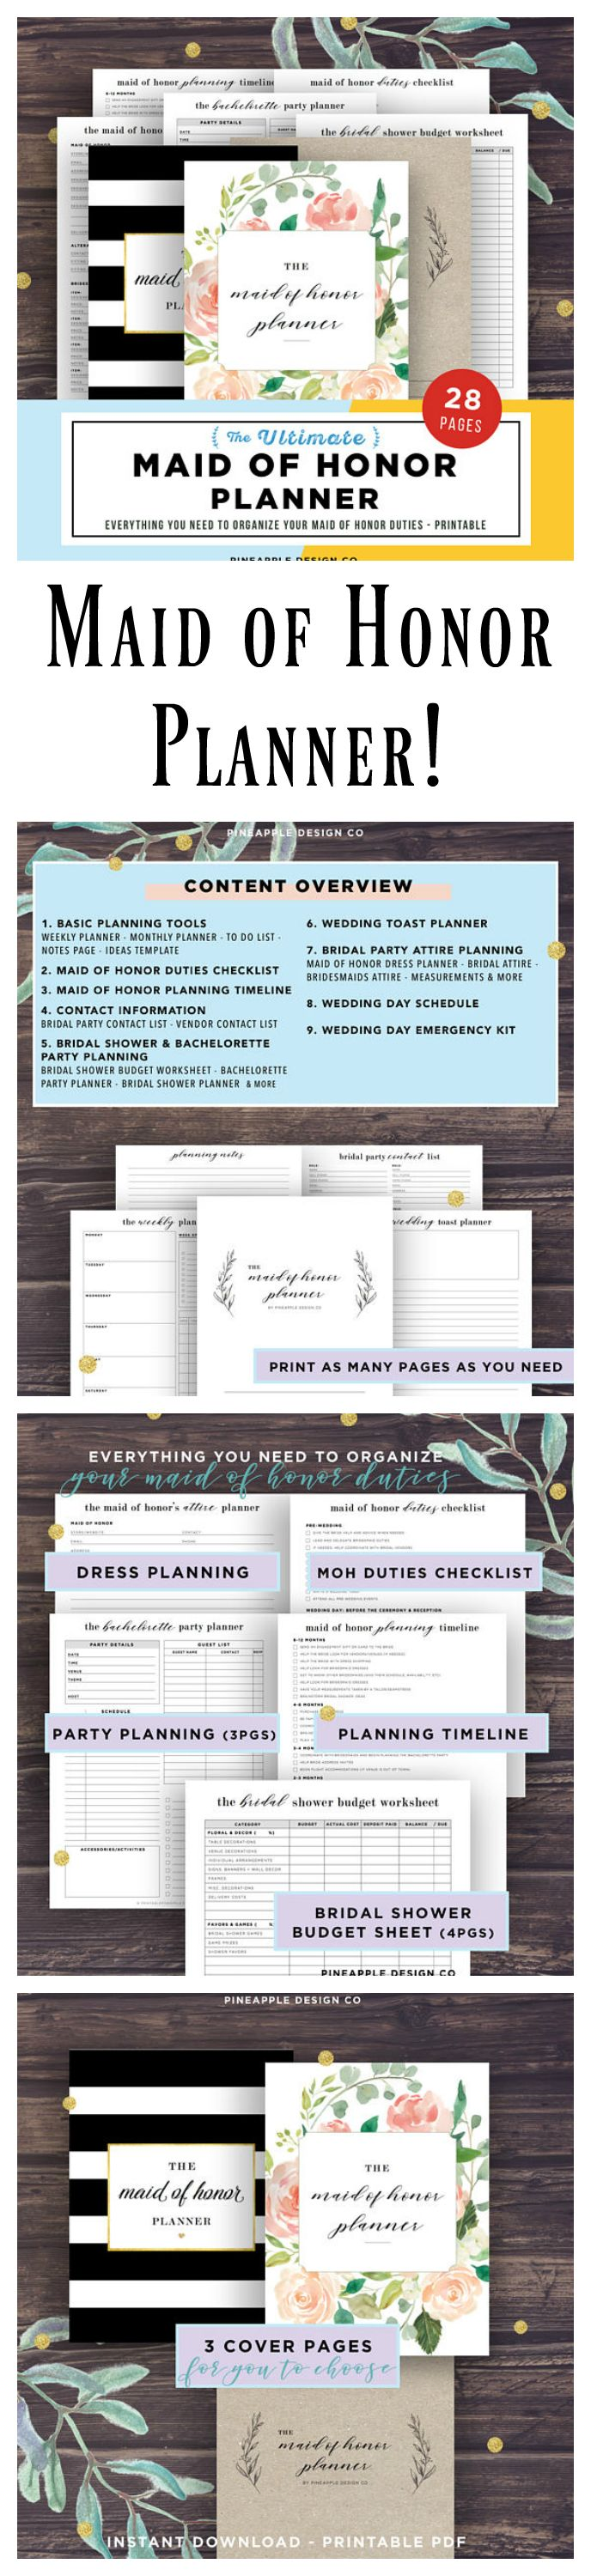 The perfect planner gift for your Maid of Honor!! First, find the MOH Duties Checklist and MOH Planning Timeline for a big picture overview of the MOH's role in the wedding planning process. Next, find specific aids for major bridal events, such as the Bridal Shower and Bachelorette Party Planners. Furthermore, from a Wedding Toast Planner to Bridesmaid Attire Worksheets to Bridal Party Contact Lists - this planner set is guaranteed to simplify the MOH's life! #ad